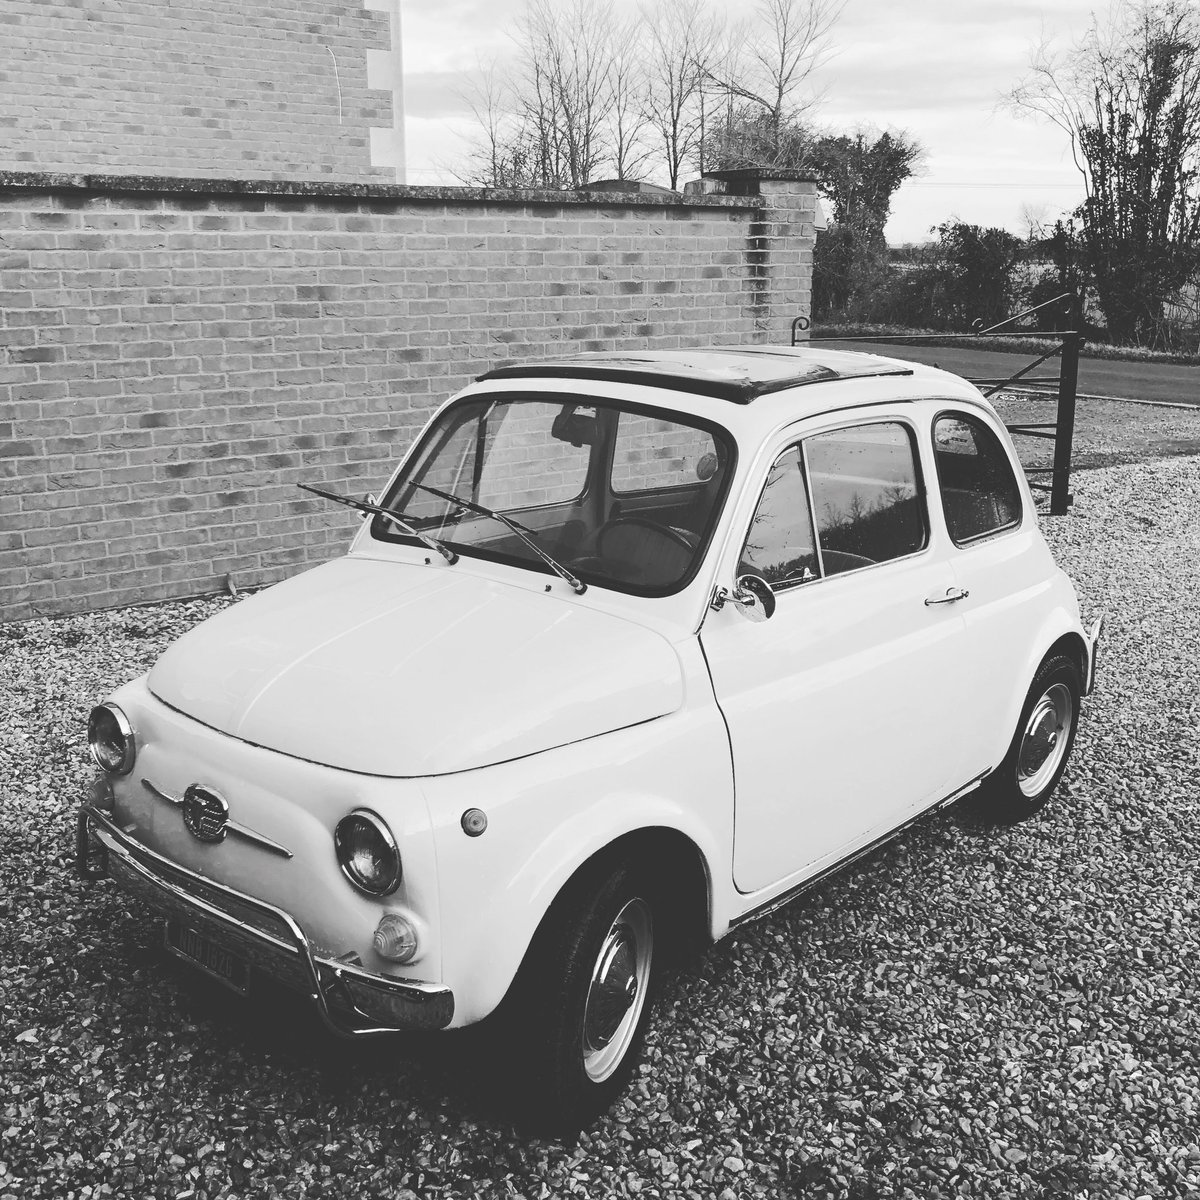 'Jellybean' is 50 years old today! @Fiat500Hire @OliviaGauch 🎂🎉